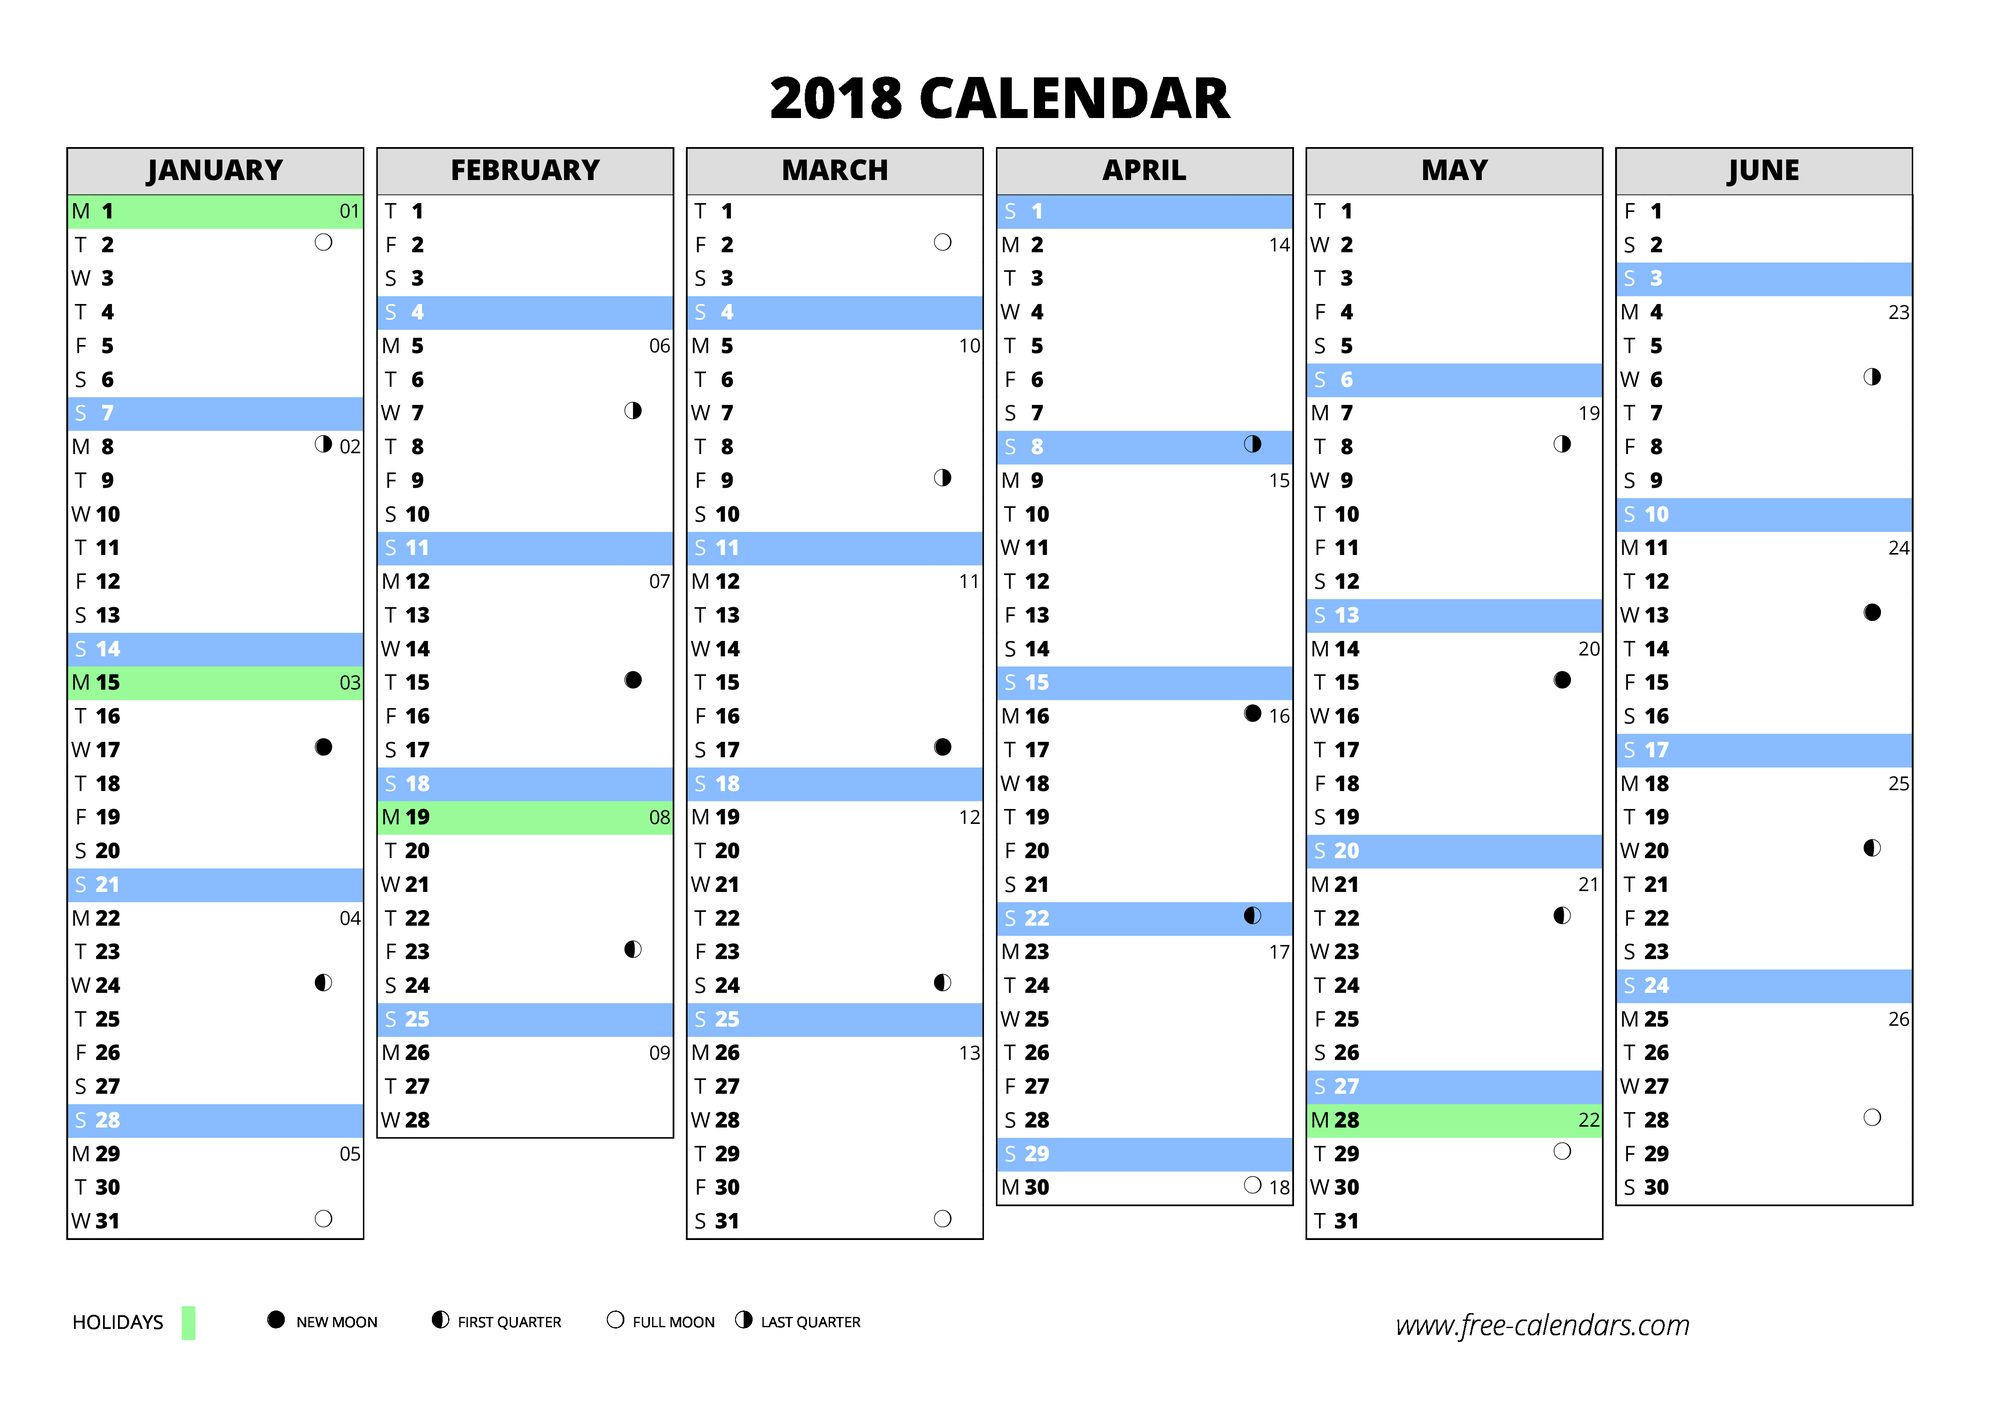 template 8 2018 calendar for pdf year at a glance 1 page